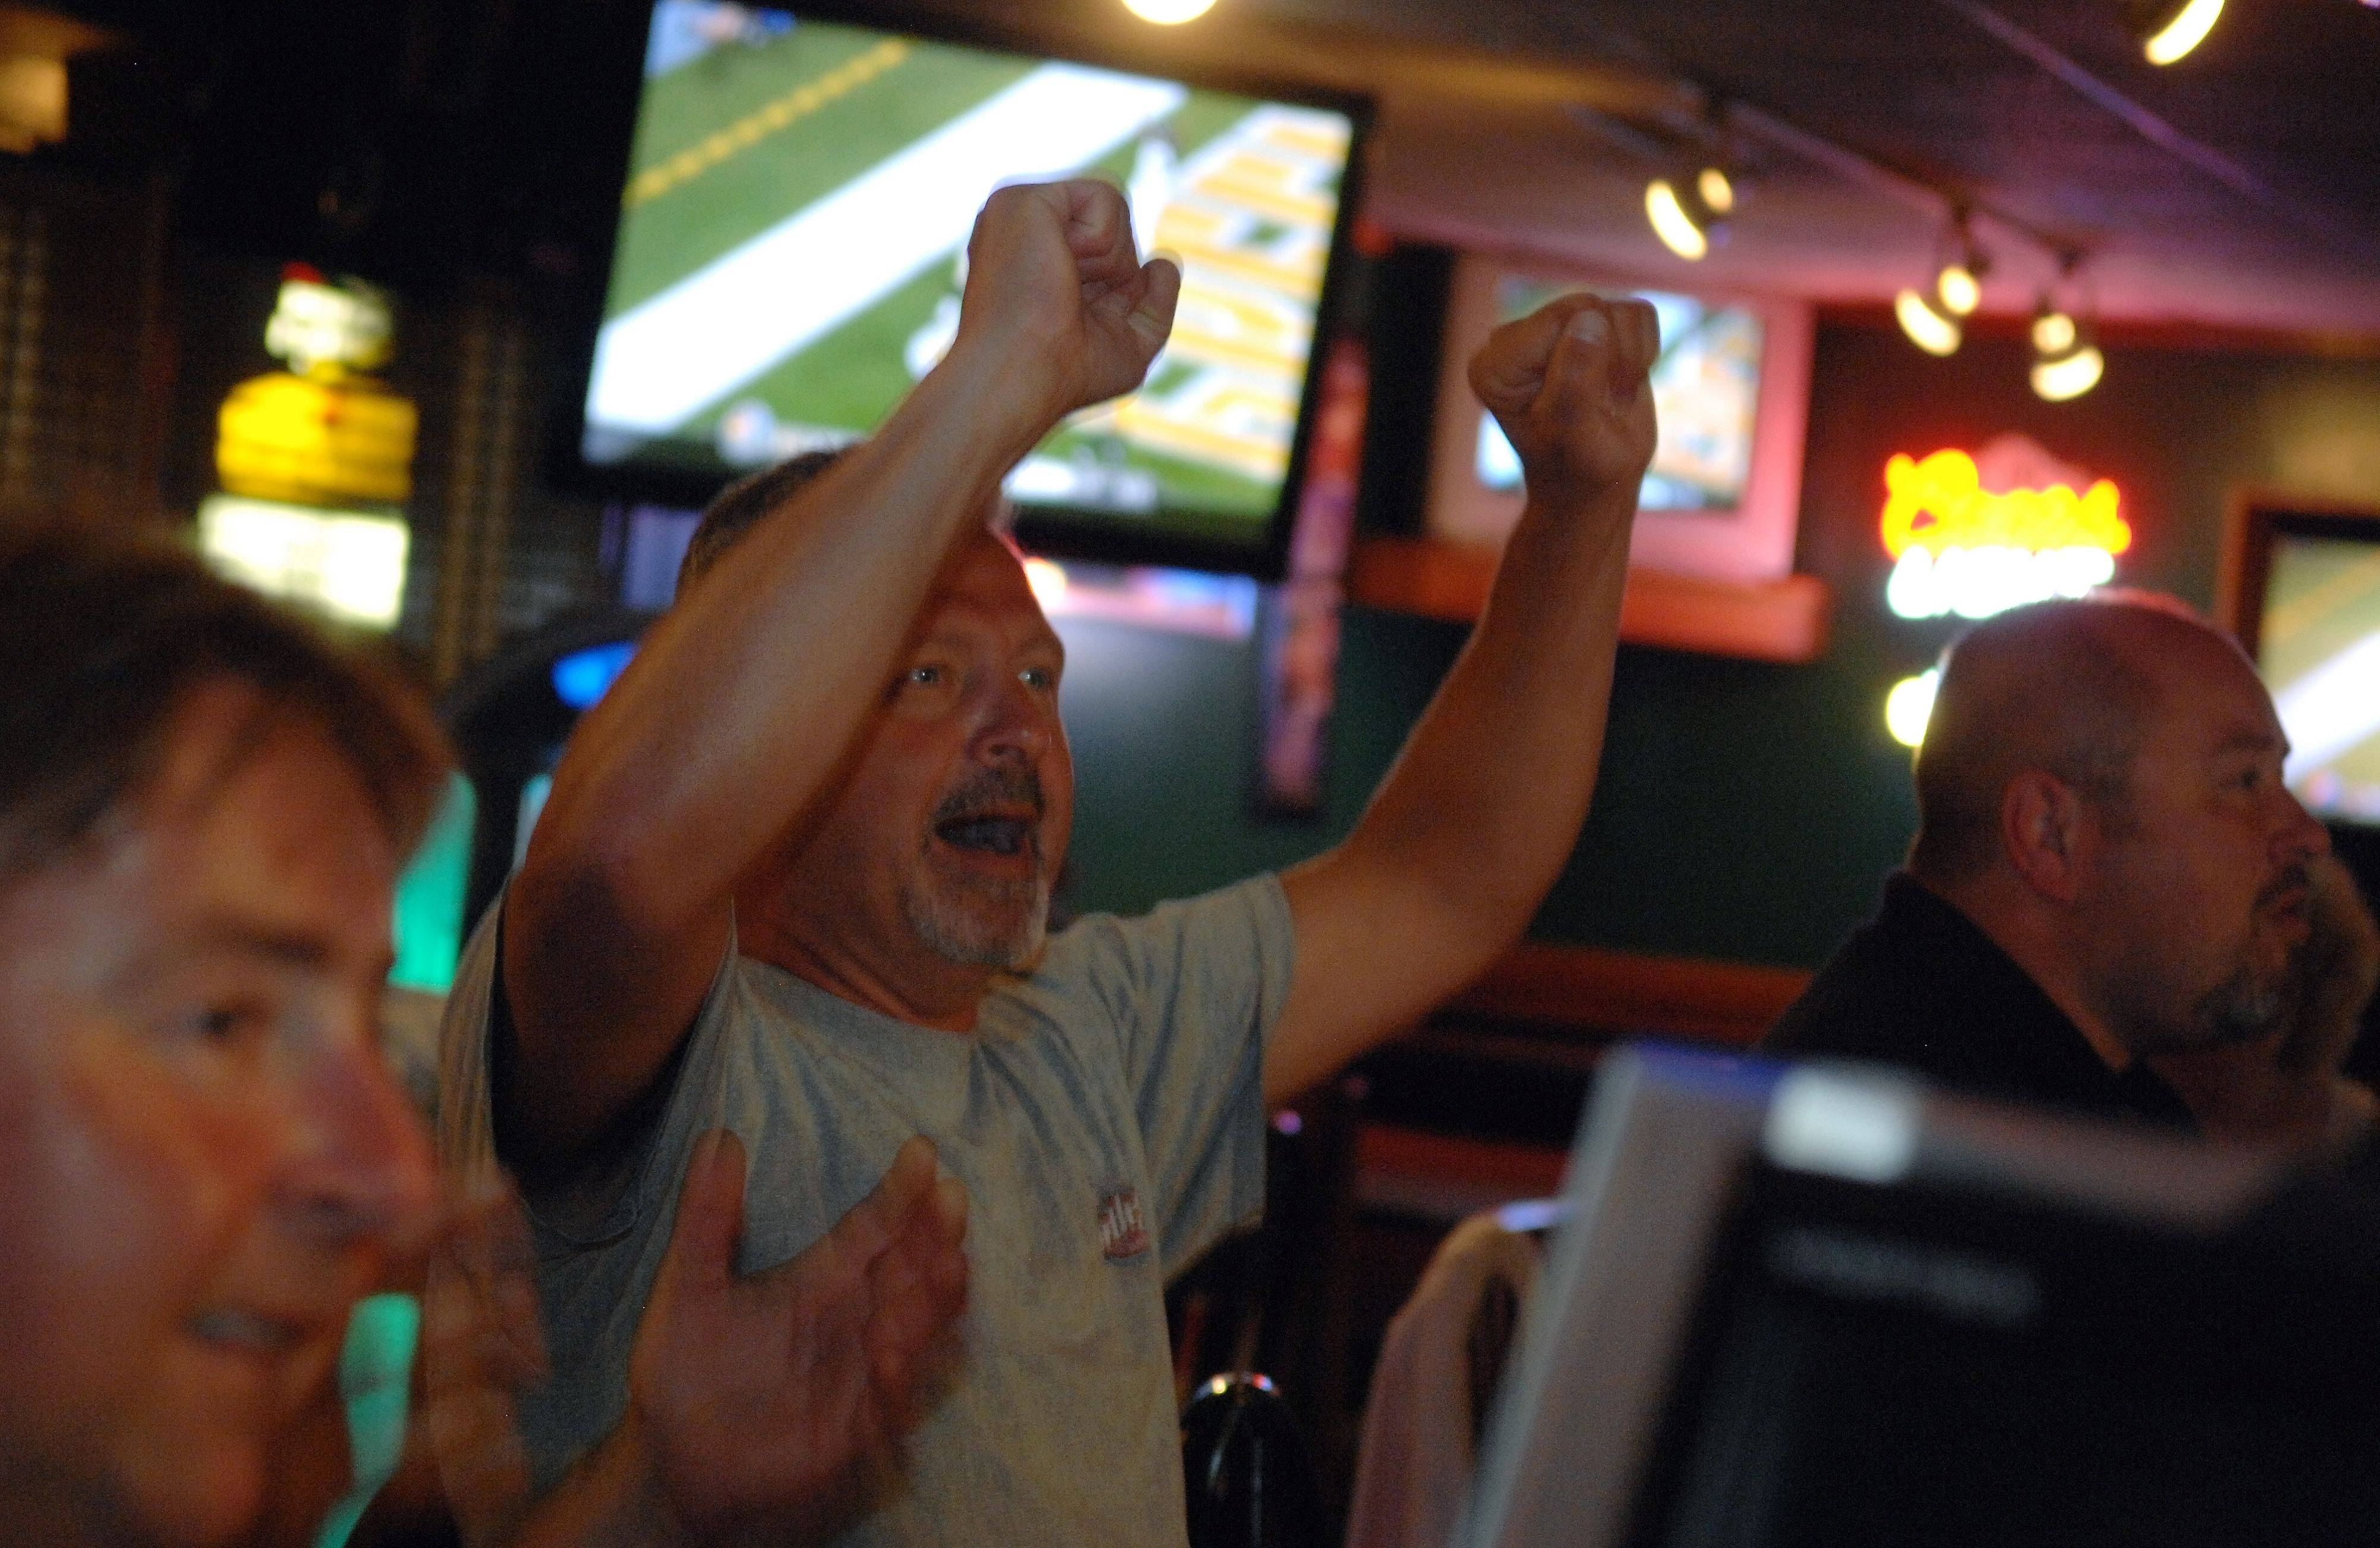 Chris Caviello of Elgin watches football at Hoopers Sports Bar & Grill.